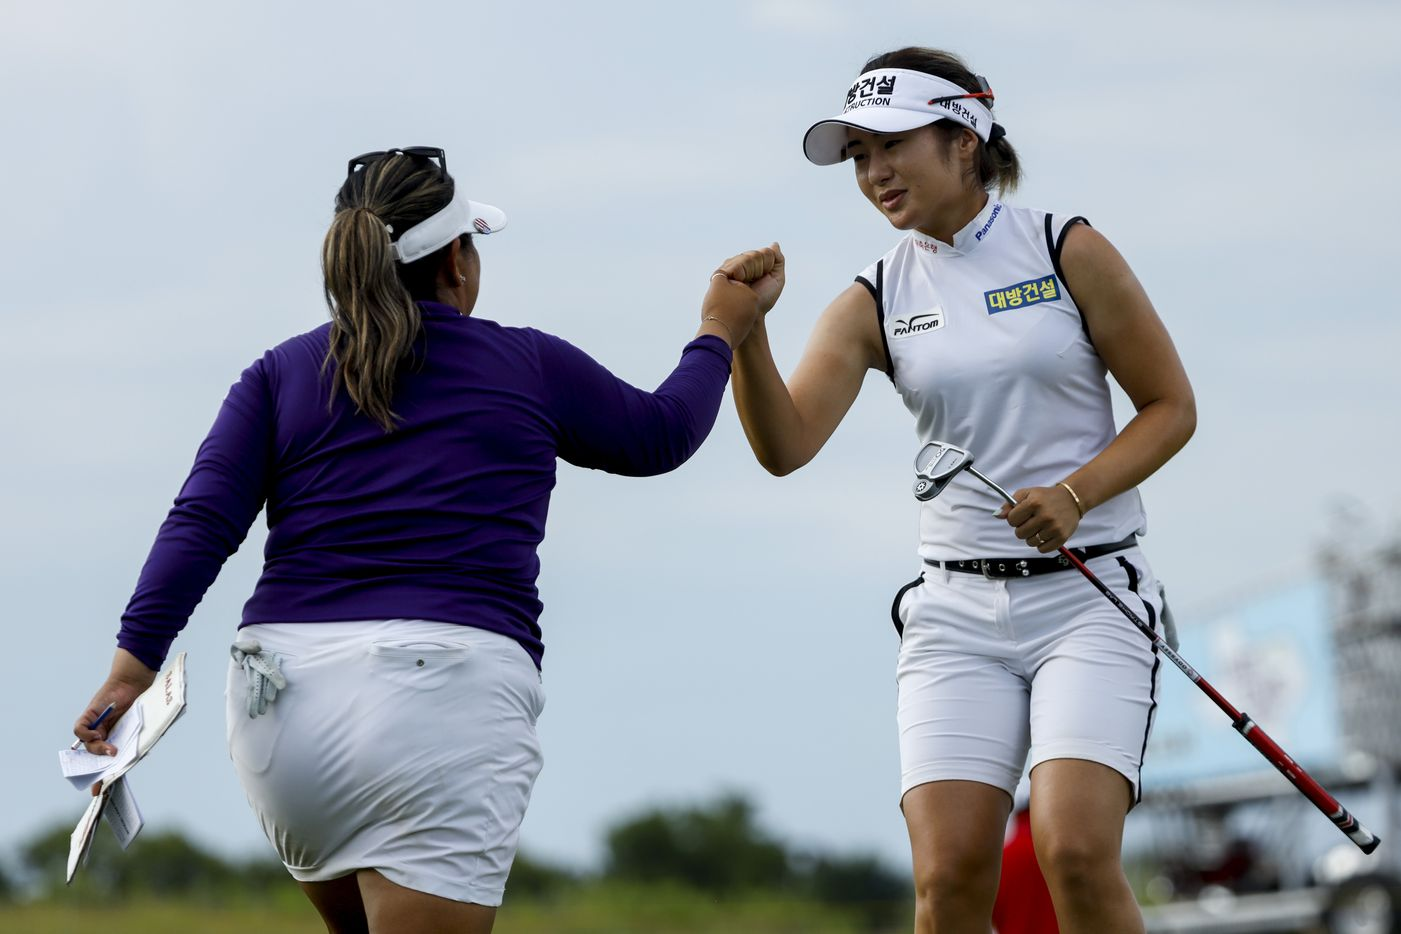 Professional golfers Jeongeun Lee6 (right) and Lizette Salas share a fist bump after round one of the LPGA VOA Classic on Thursday, July 1, 2021, in The Colony, Texas. Lee6 shot seven under par on the first day. (Elias Valverde II/The Dallas Morning News)